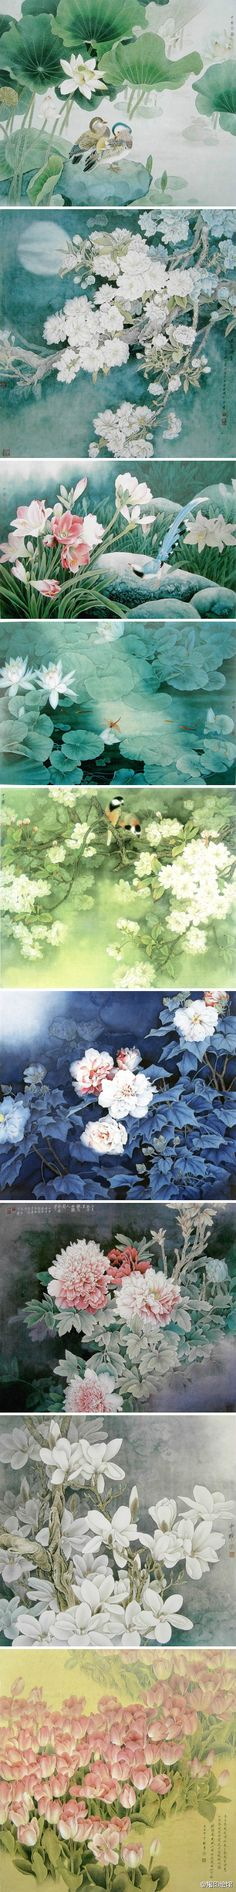 Chinese brush paintings